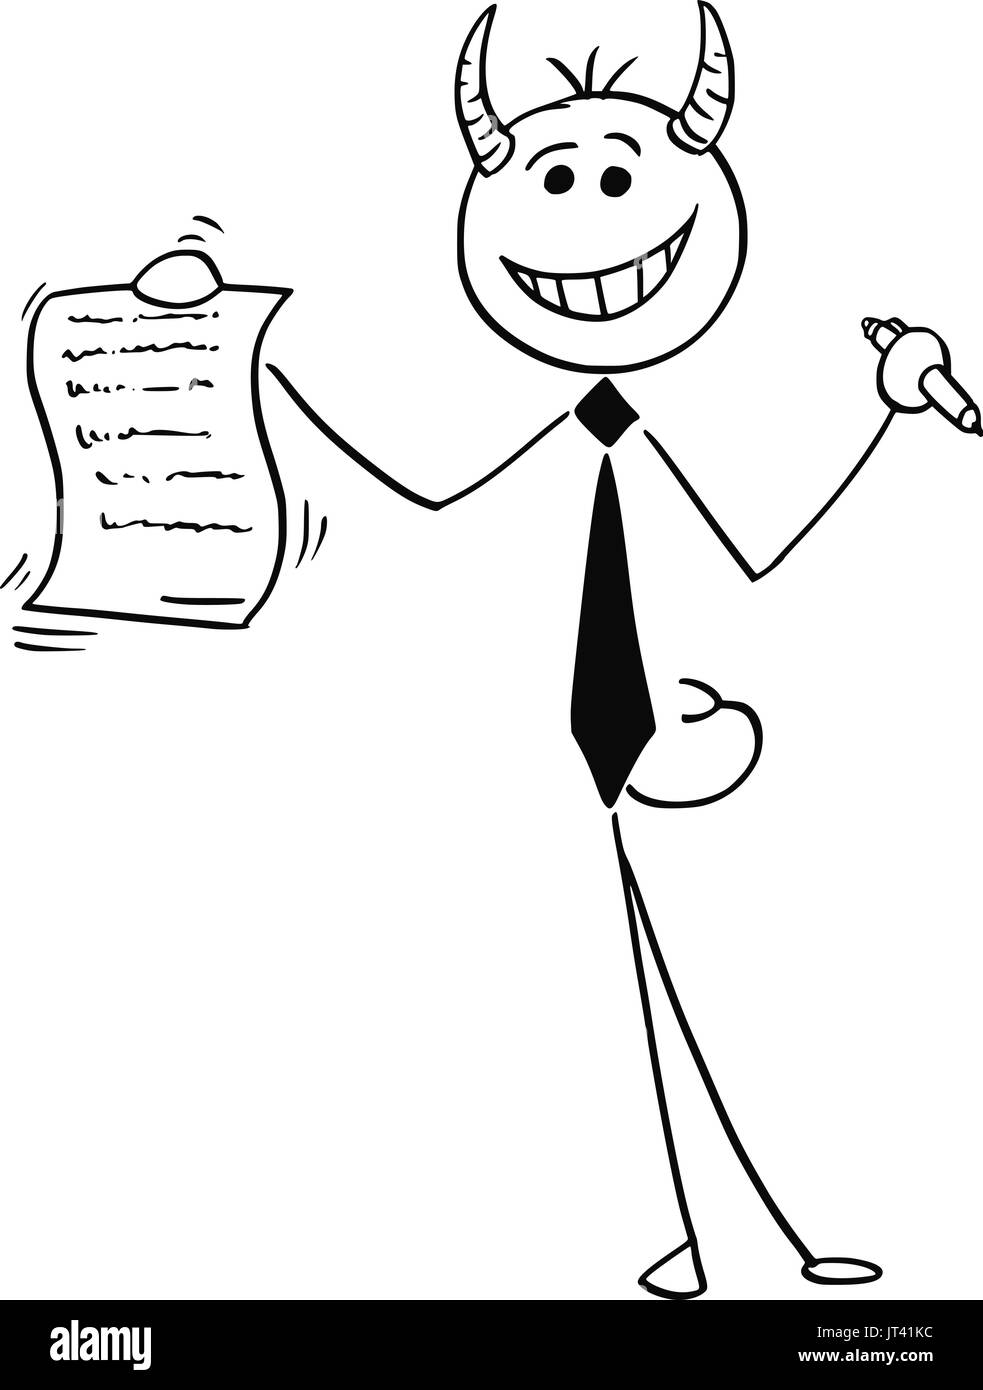 Devil horns black and white stock photos images alamy cartoon vector illustration of smiling stick man devil businessman or salesman offering contract or agreement paper buycottarizona